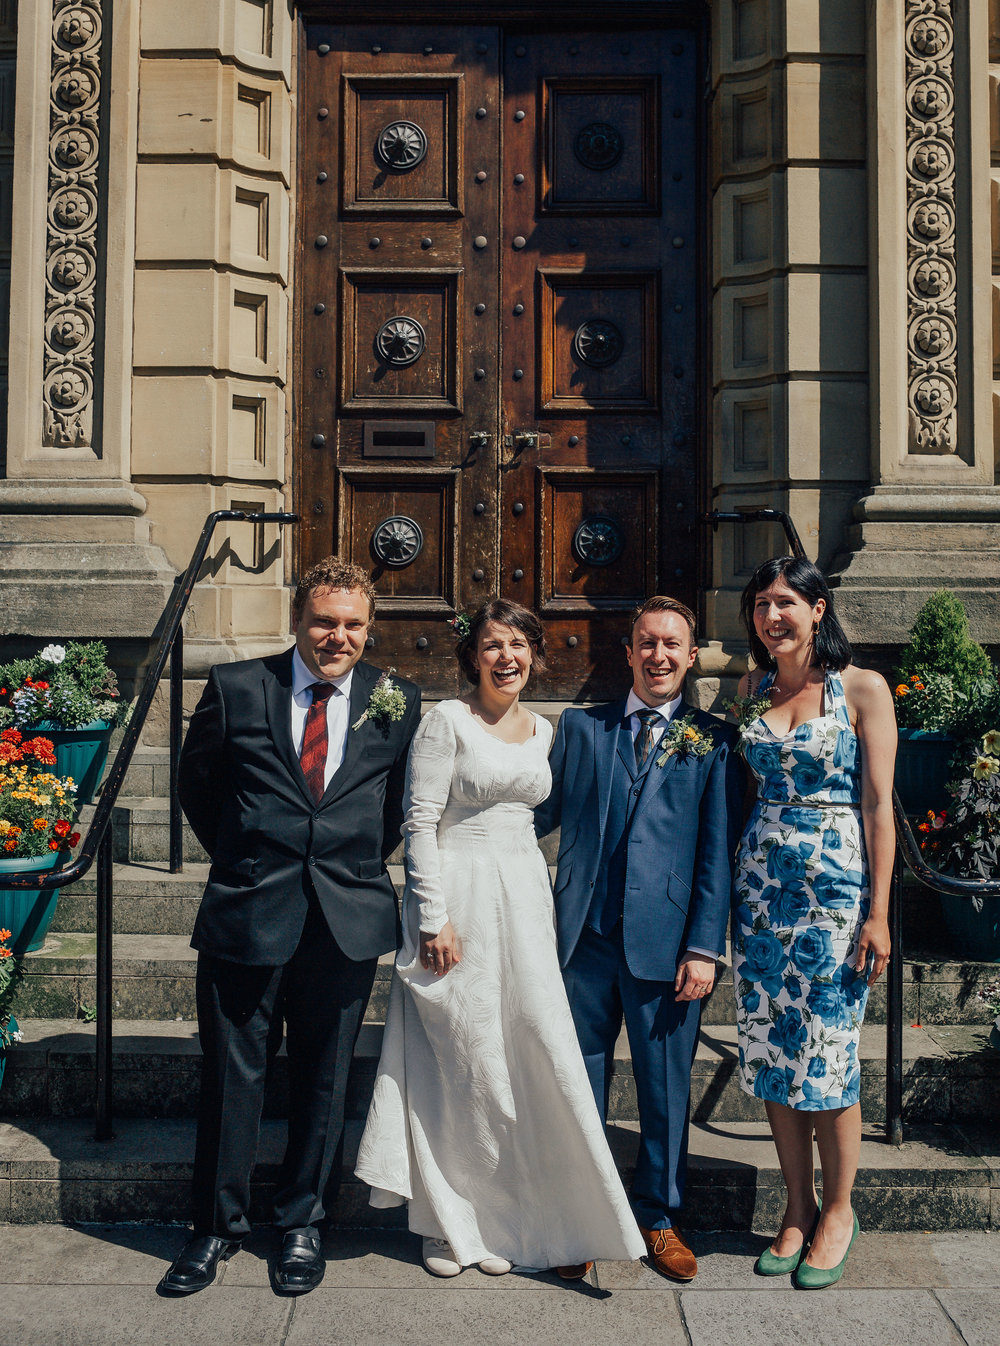 VICTORIA_HALL_SALTAIRE_VINTAGE_YORKSHIRE_WEDDING_PJ_PHILLIPS_PHOTOGRAPHY_61.jpg